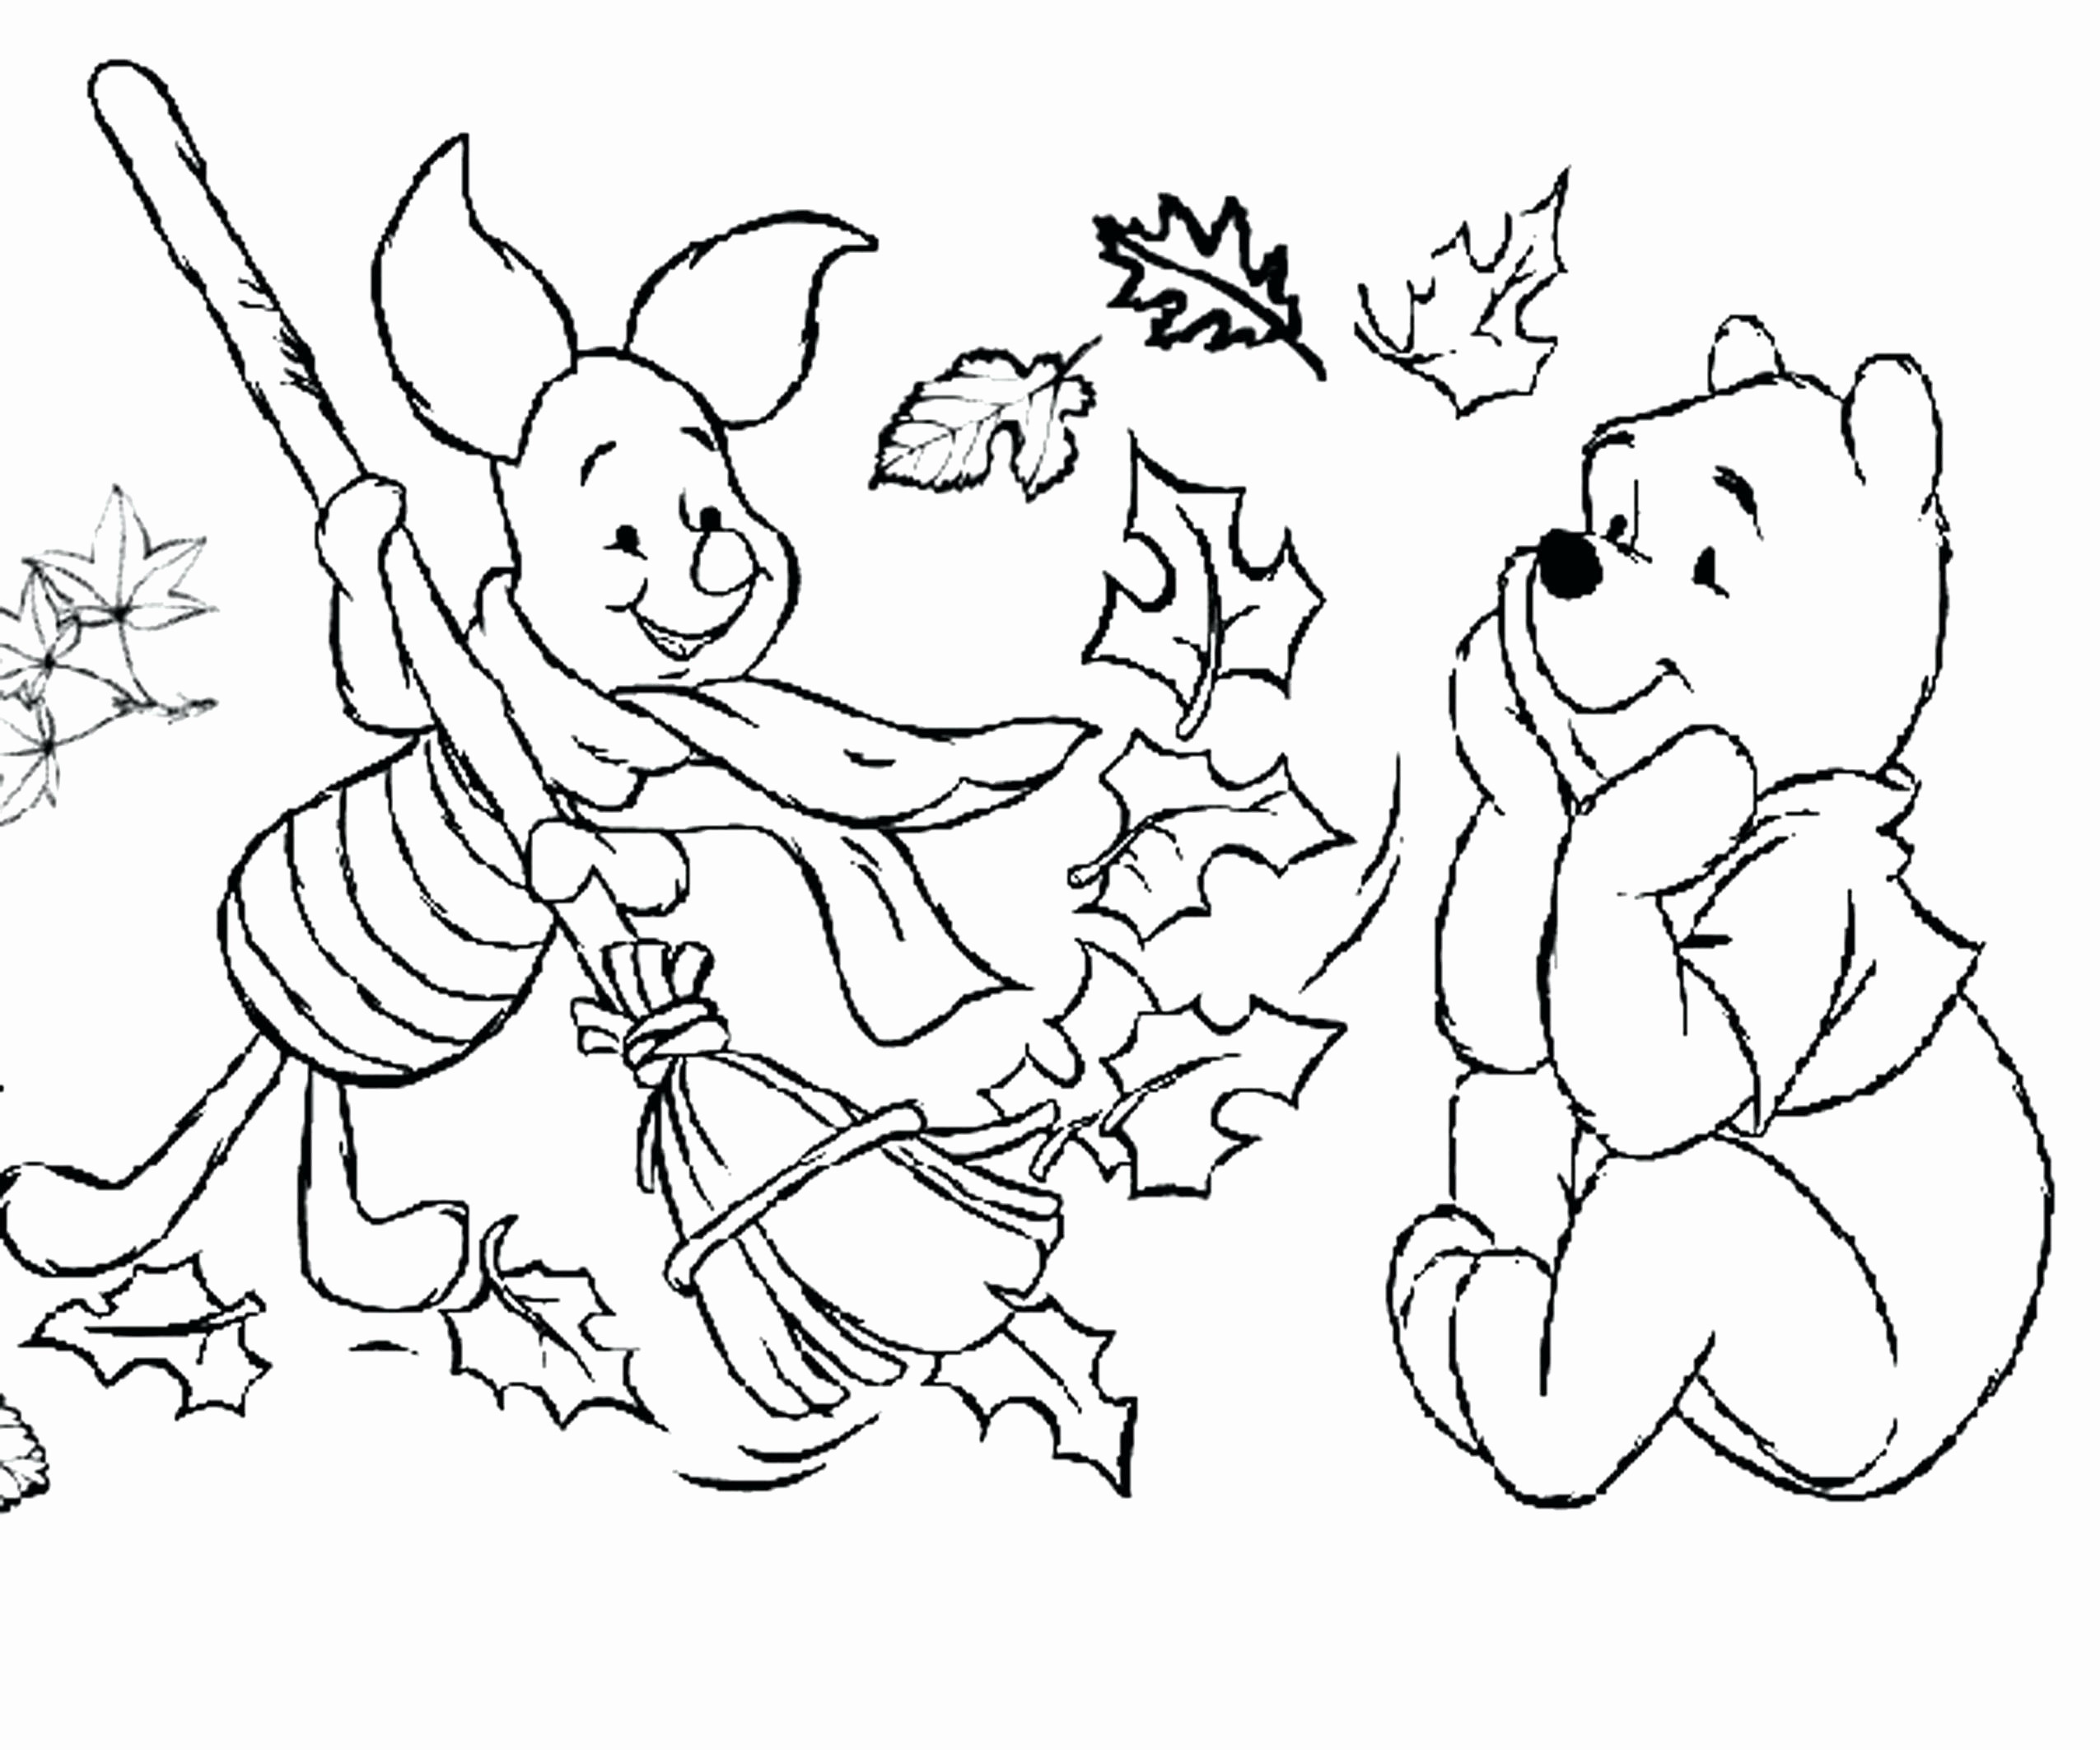 animal coloring pages for kids Download-Free Animal Coloring Pages Luxury Batman Coloring Pages Games New Fall Coloring Pages 0d Page for 11-q